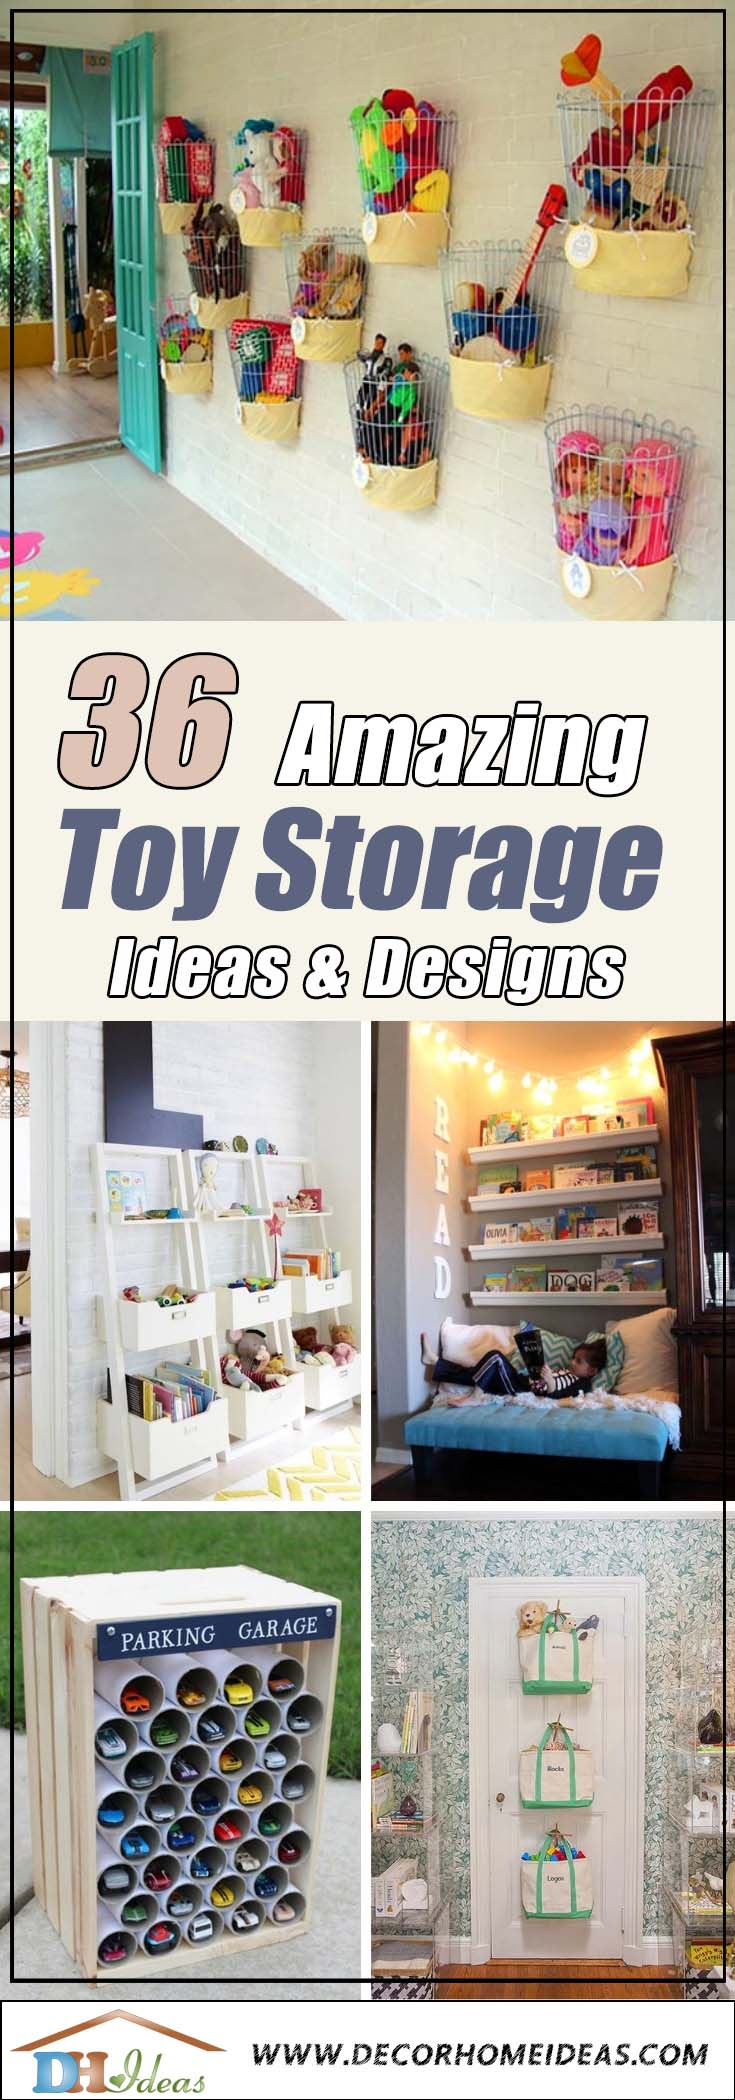 36 Best Toy Storage Ideas #toystorage #kidsroom #storage #organize #decorhomeideas